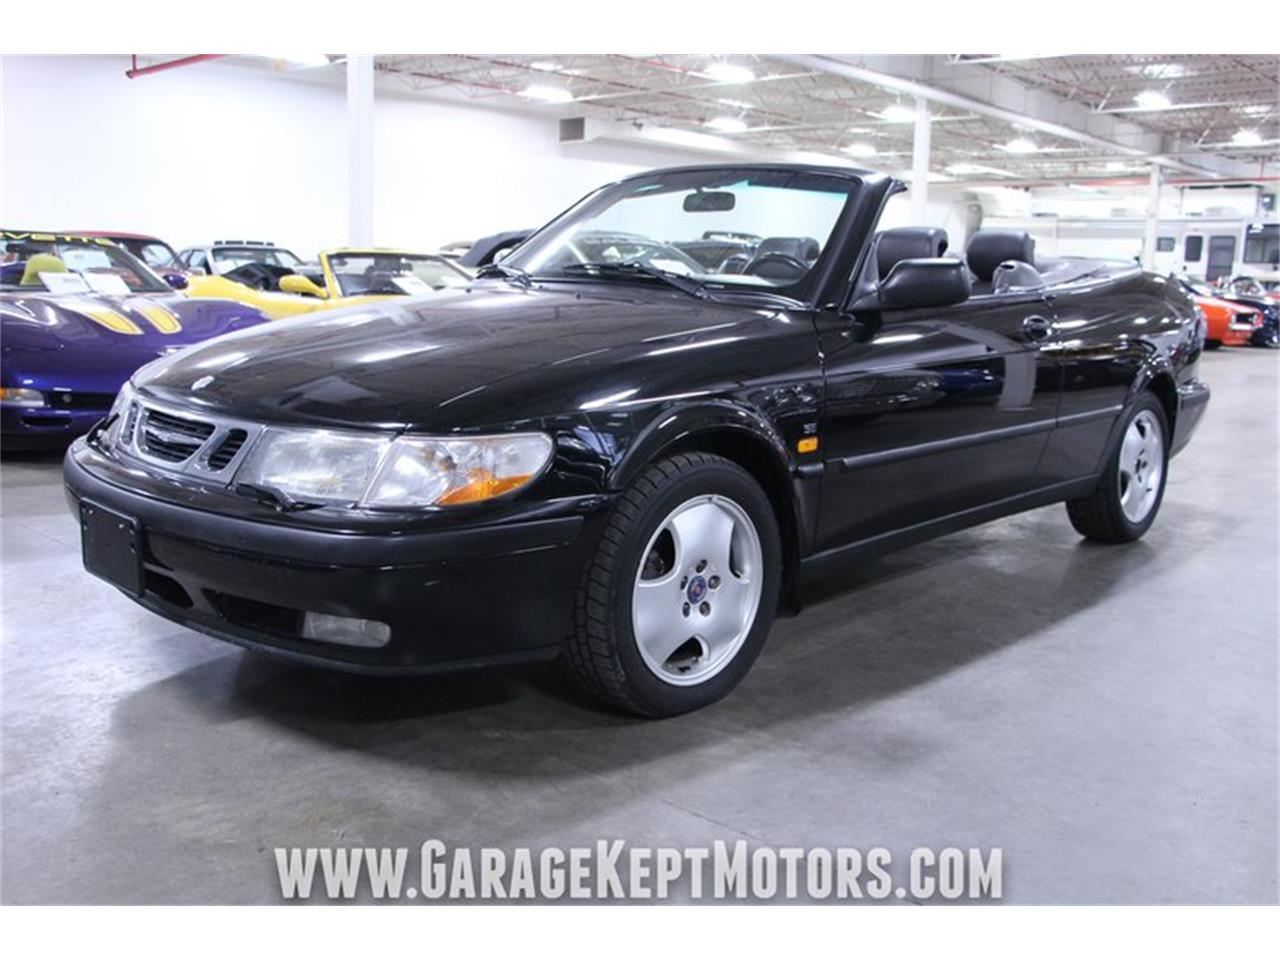 1999 Saab 9-3 for sale in Grand Rapids, MI – photo 70